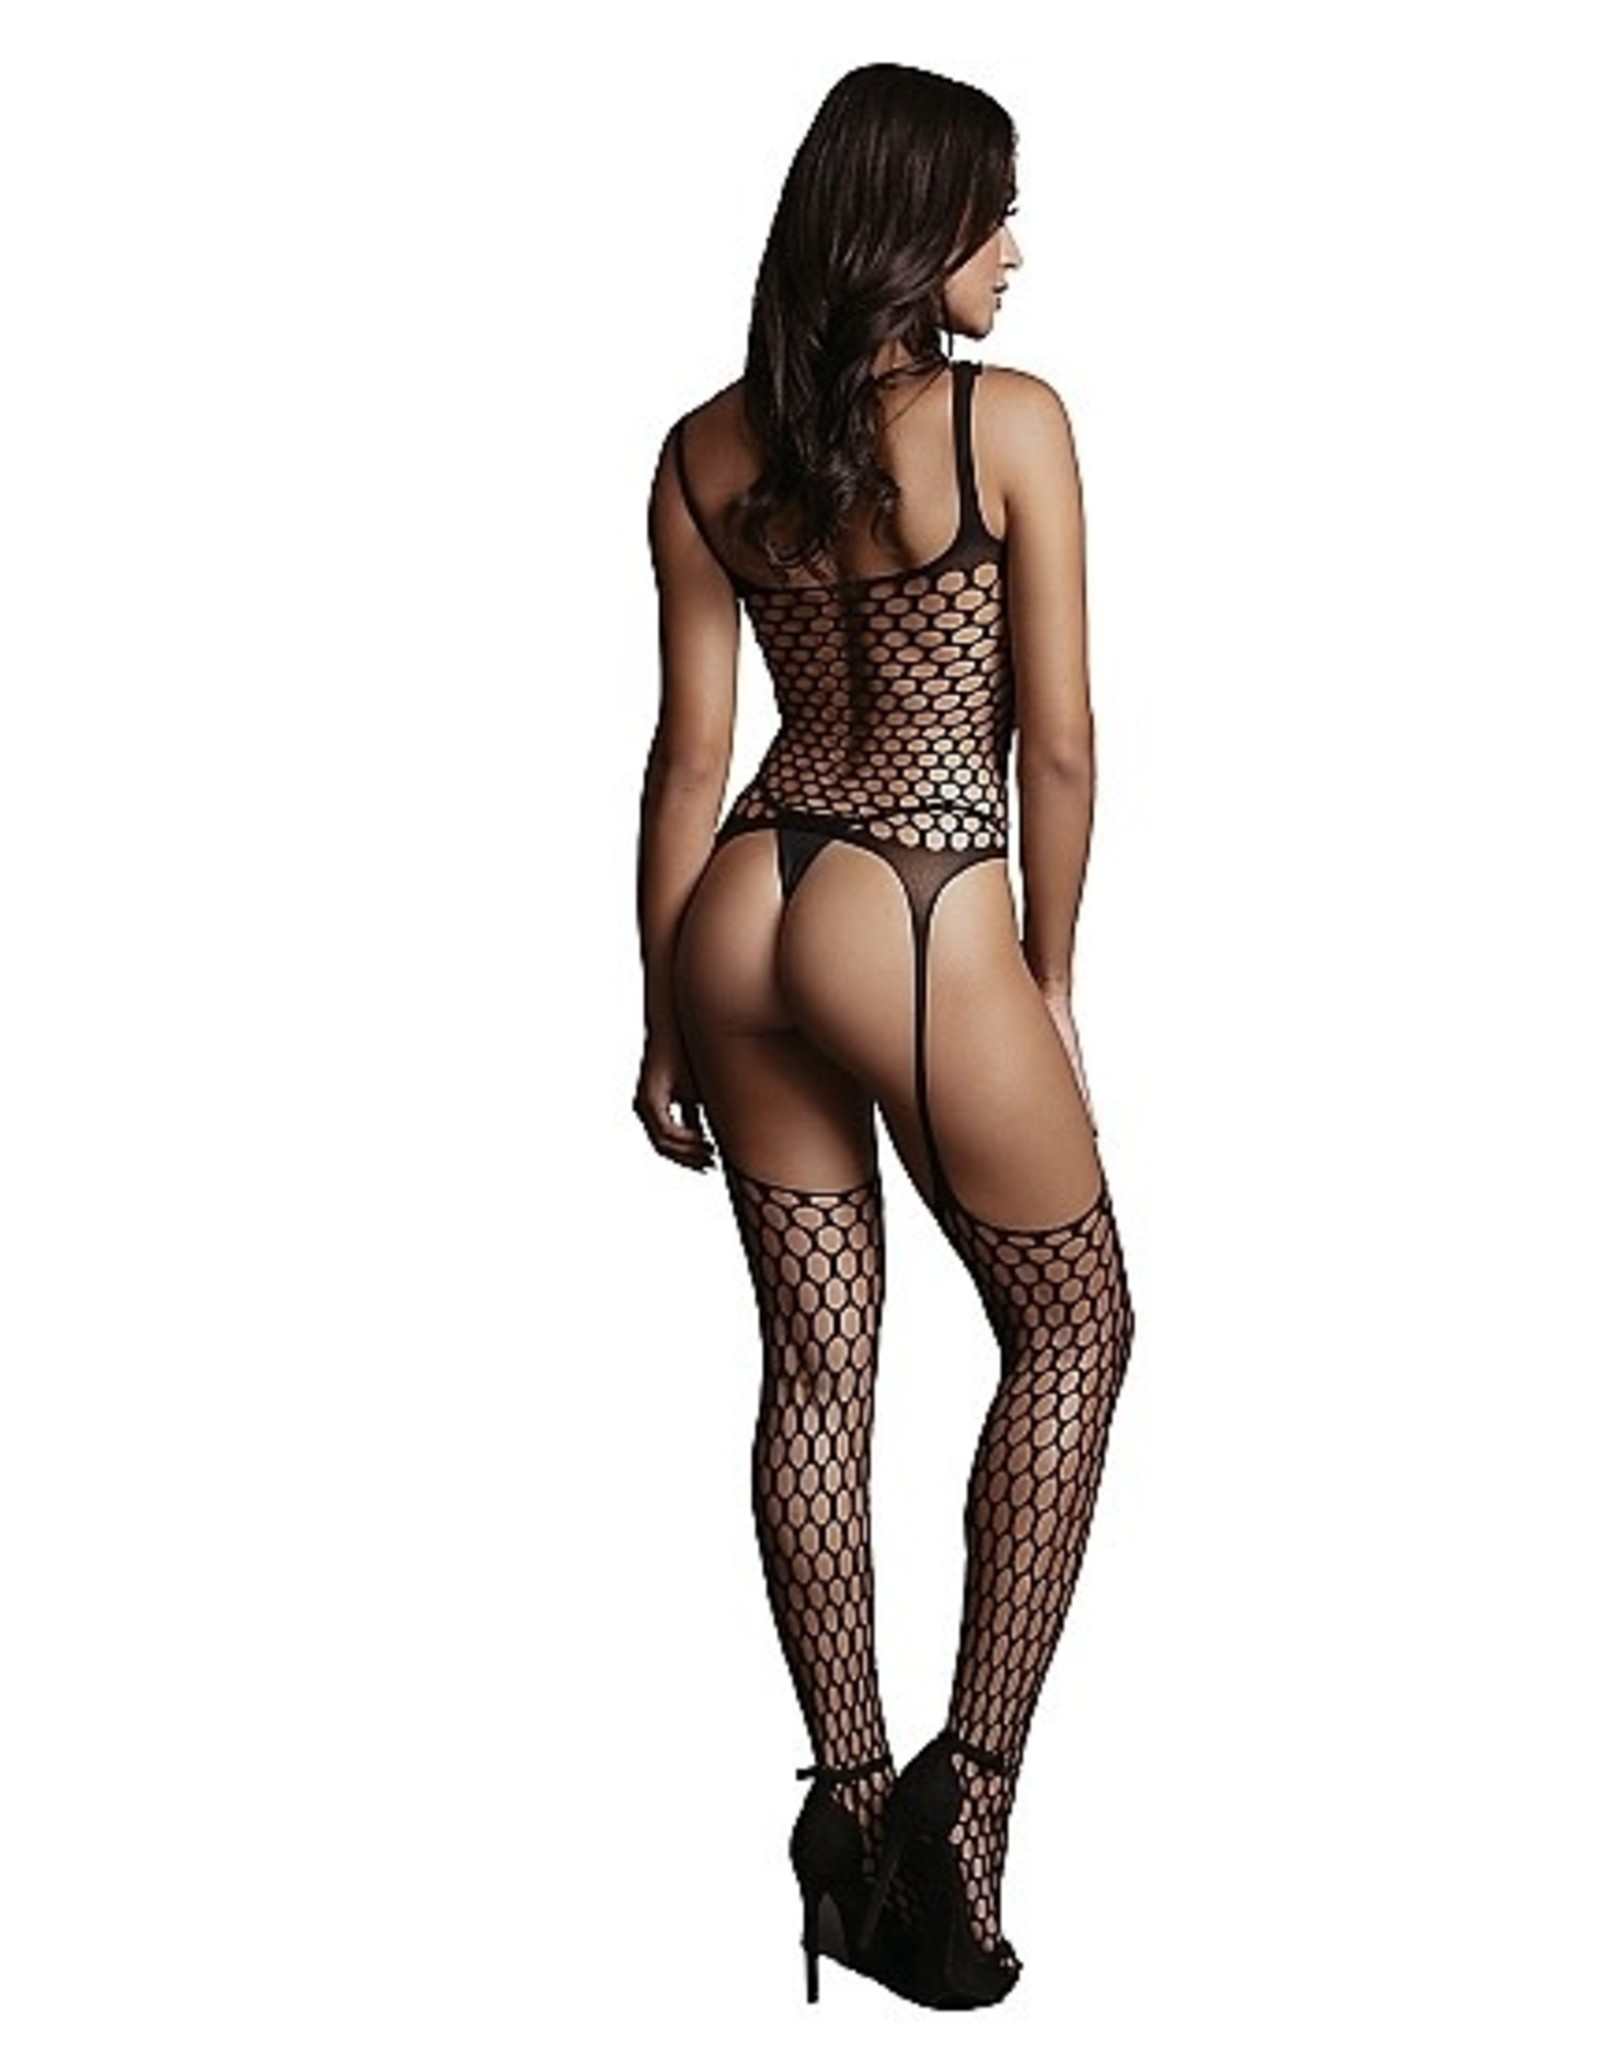 LE DESIR LE DESIR - FENCE SUSPENDER BODYSTOCKING - BLACK - ONE SIZE